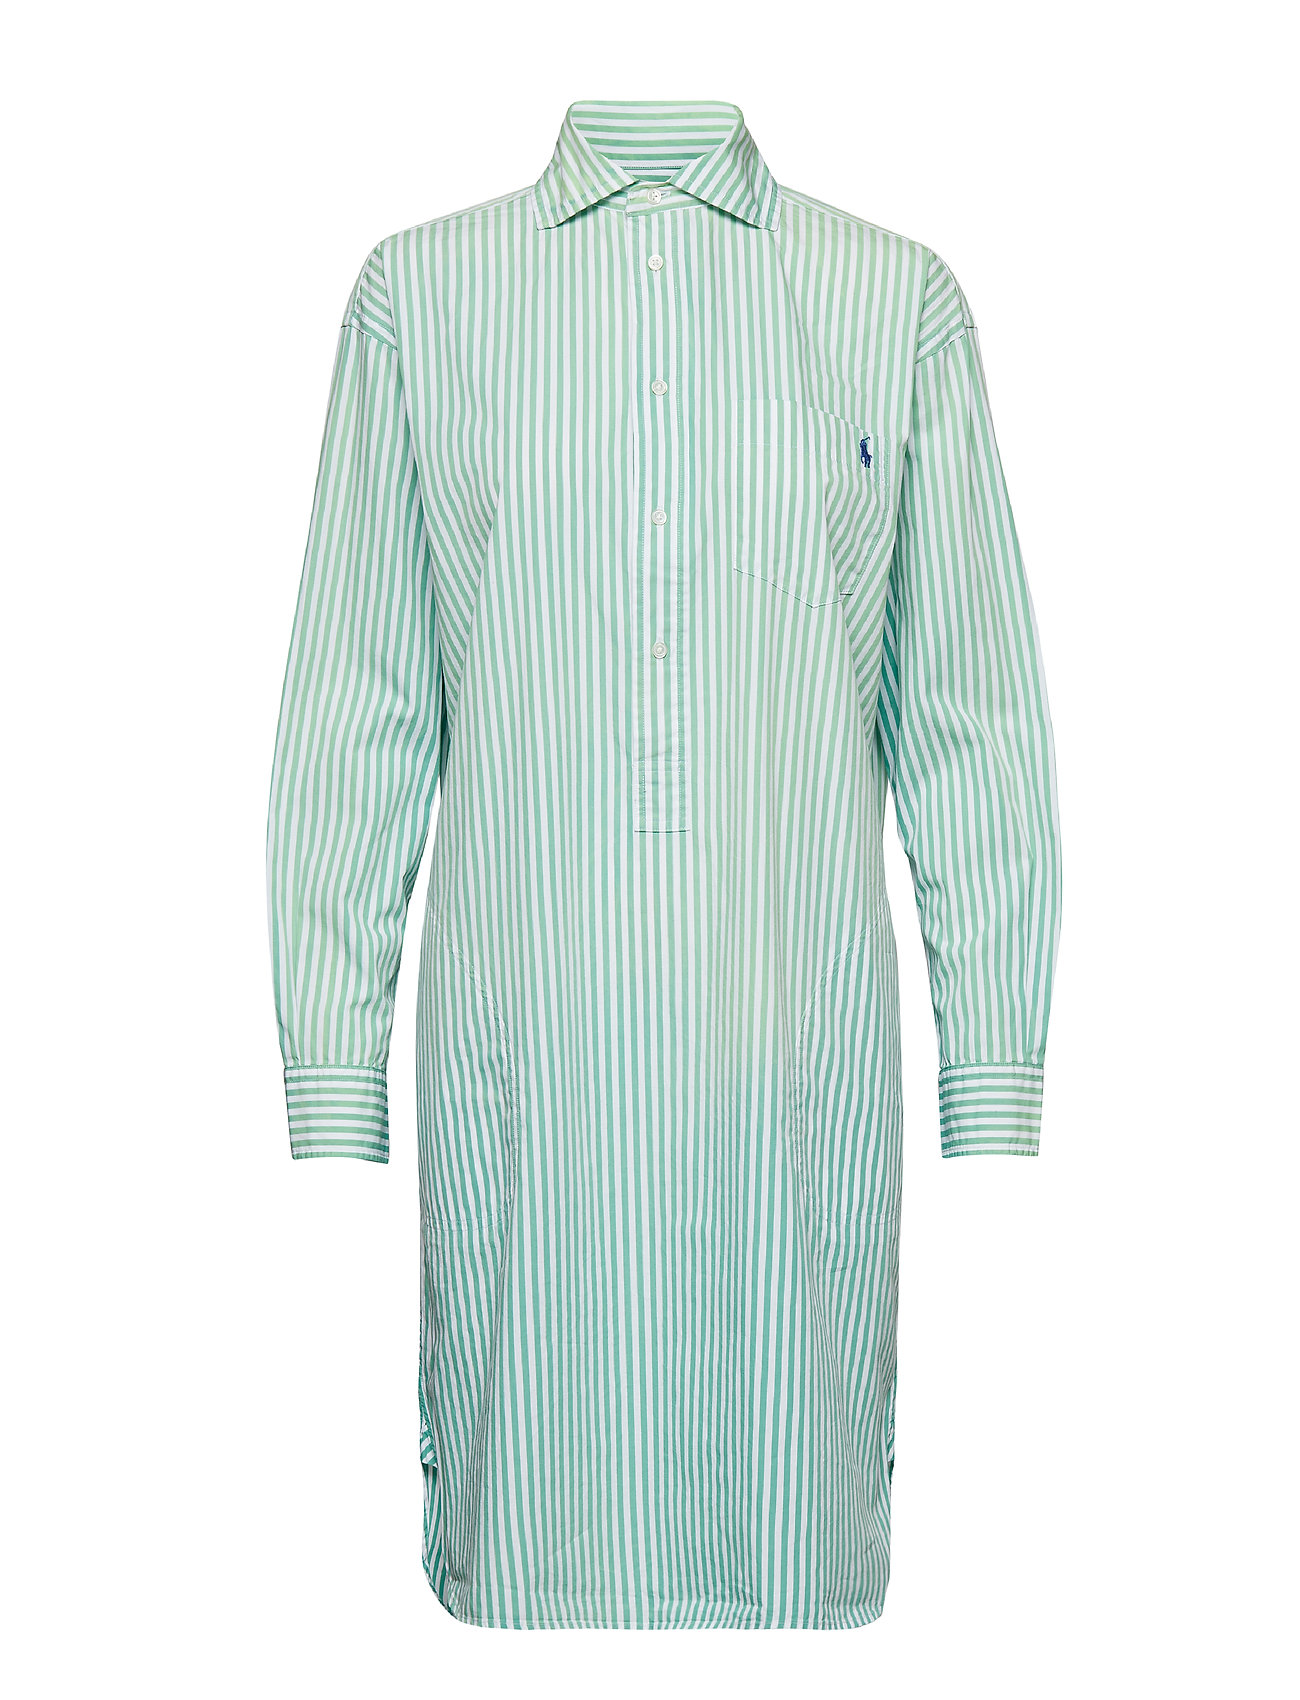 Polo Ralph Lauren Striped Poplin Shirtdress - 112A SEAFOAM GREE